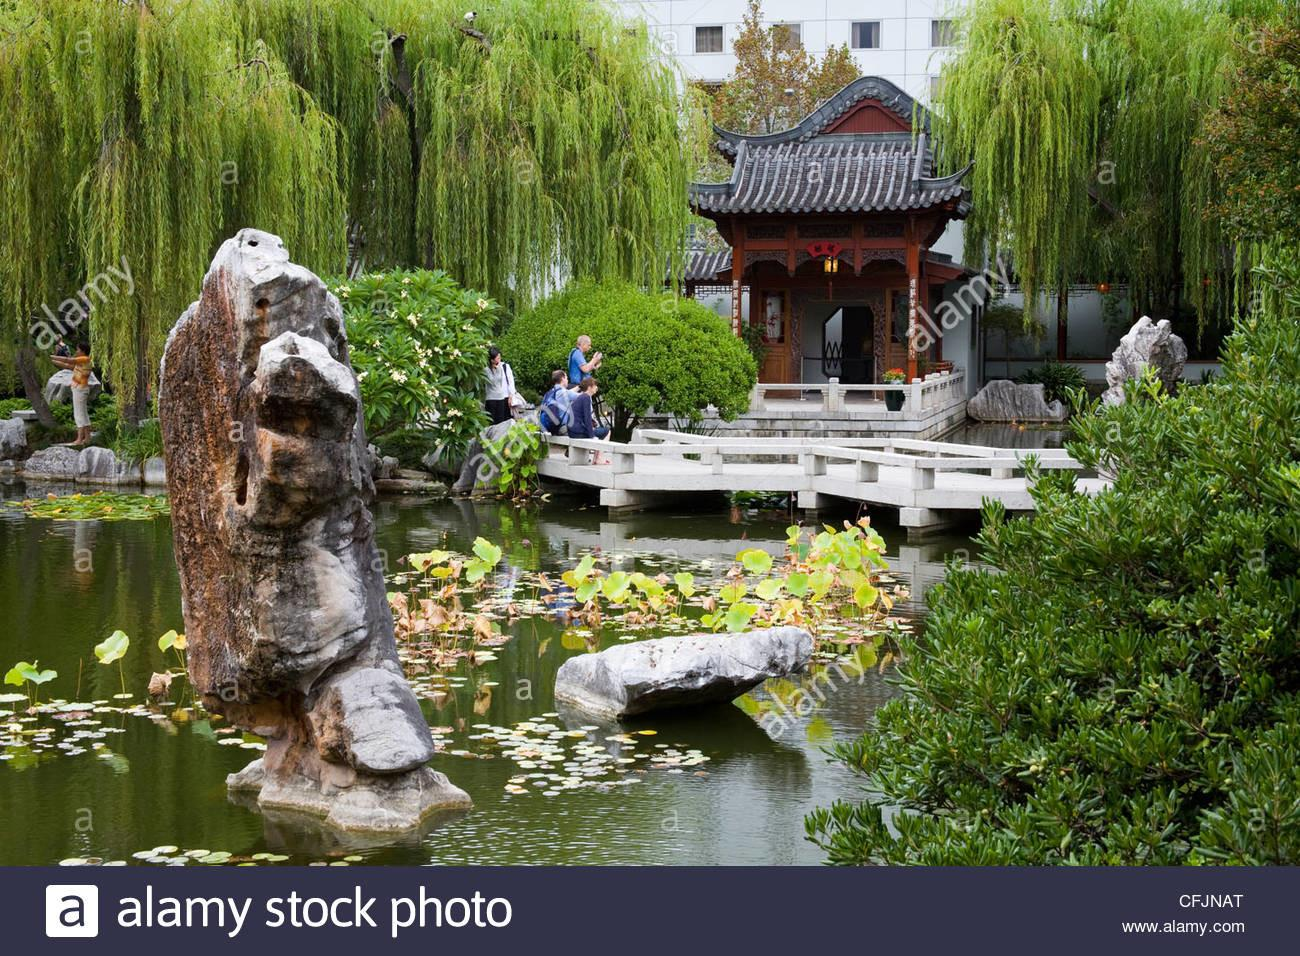 Chinese Garden Friendship Darling Harbour Central